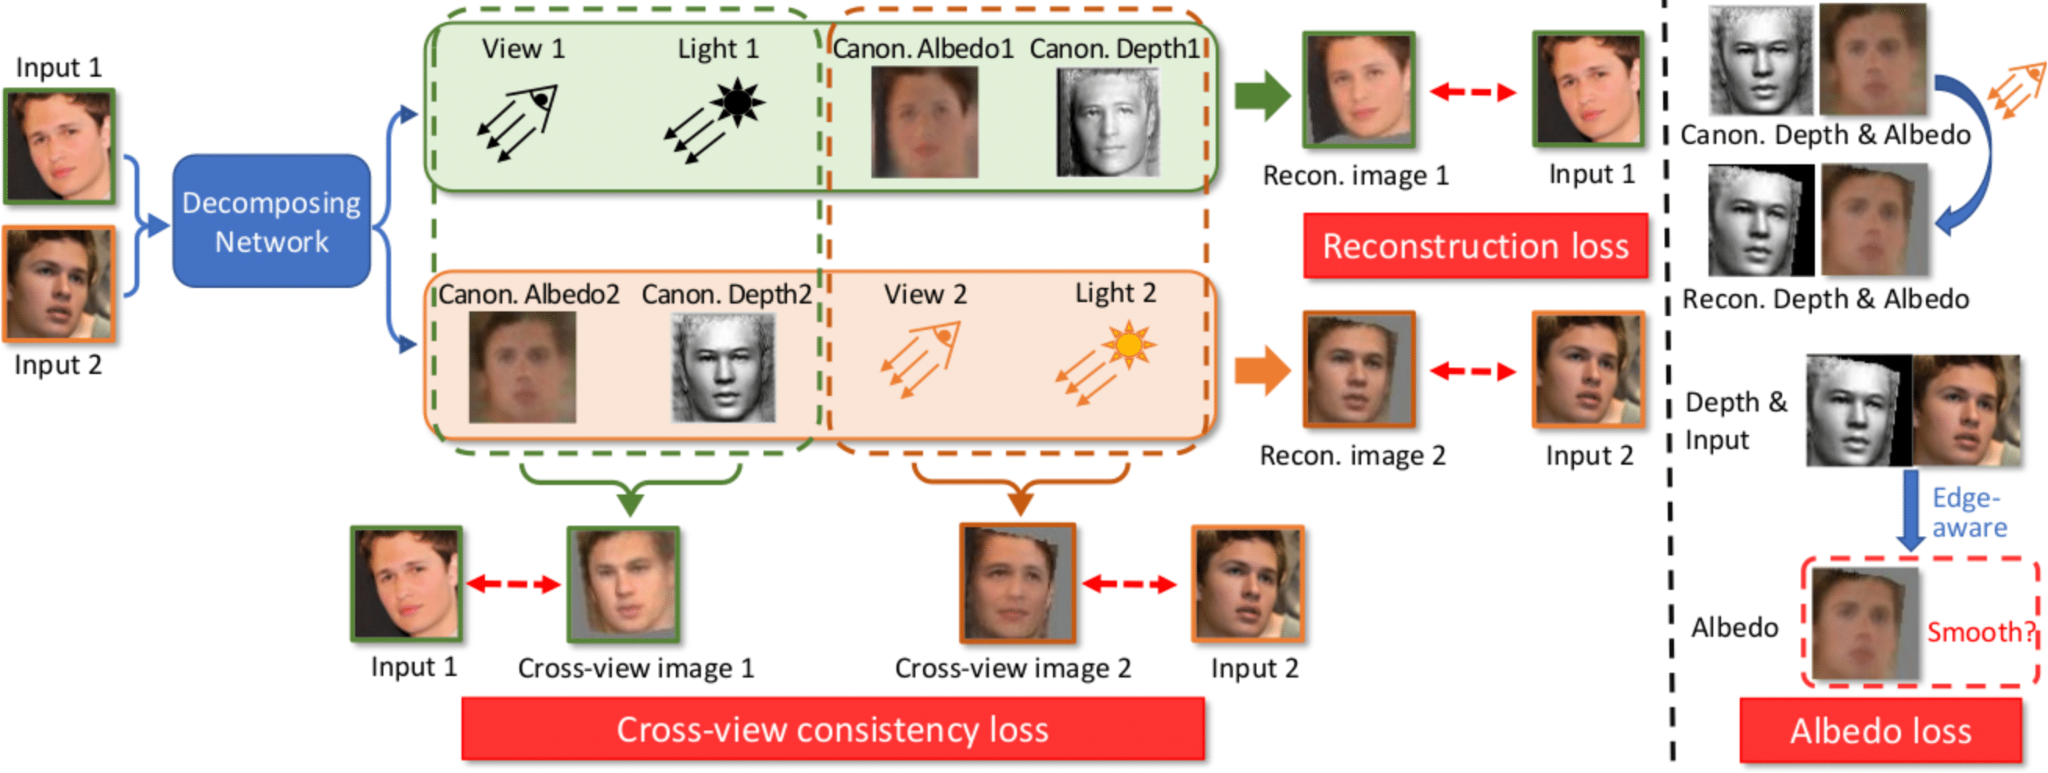 Toward Realistic Single-View 3D Object Reconstruction with Unsupervised Learning from Multiple Images